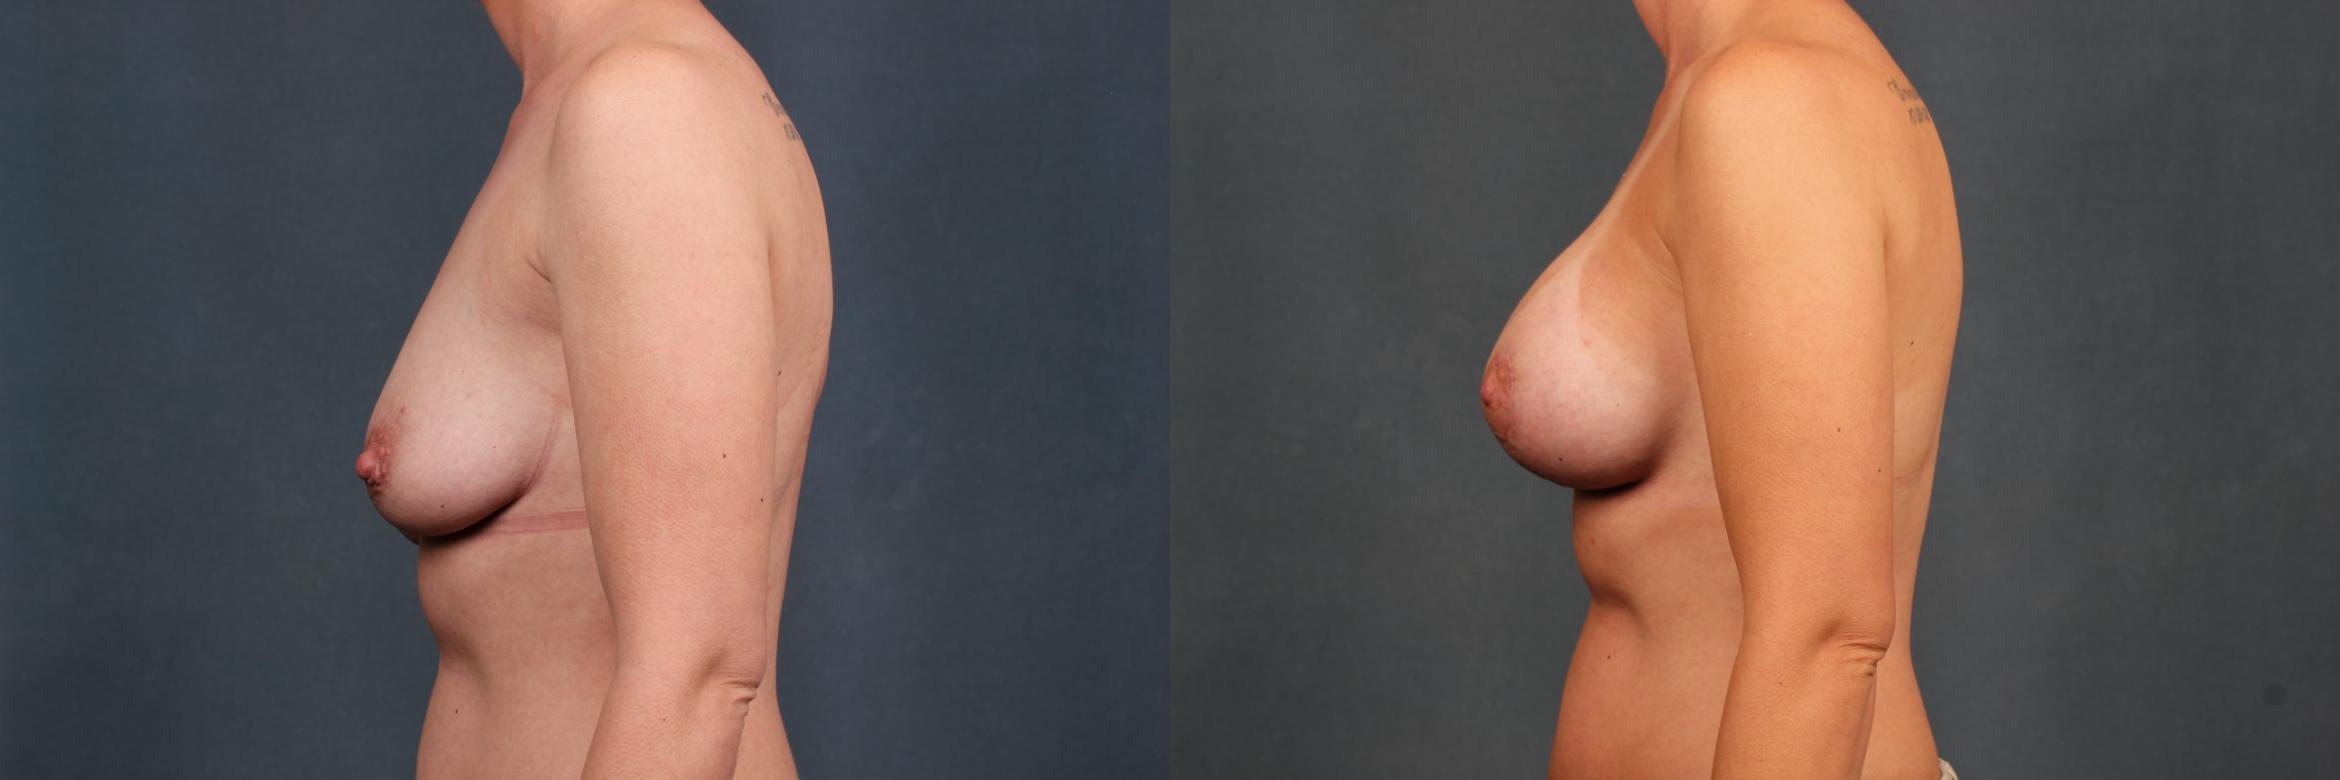 Lift Case 427 Before & After View #3 | Louisville, KY | CaloAesthetics® Plastic Surgery Center